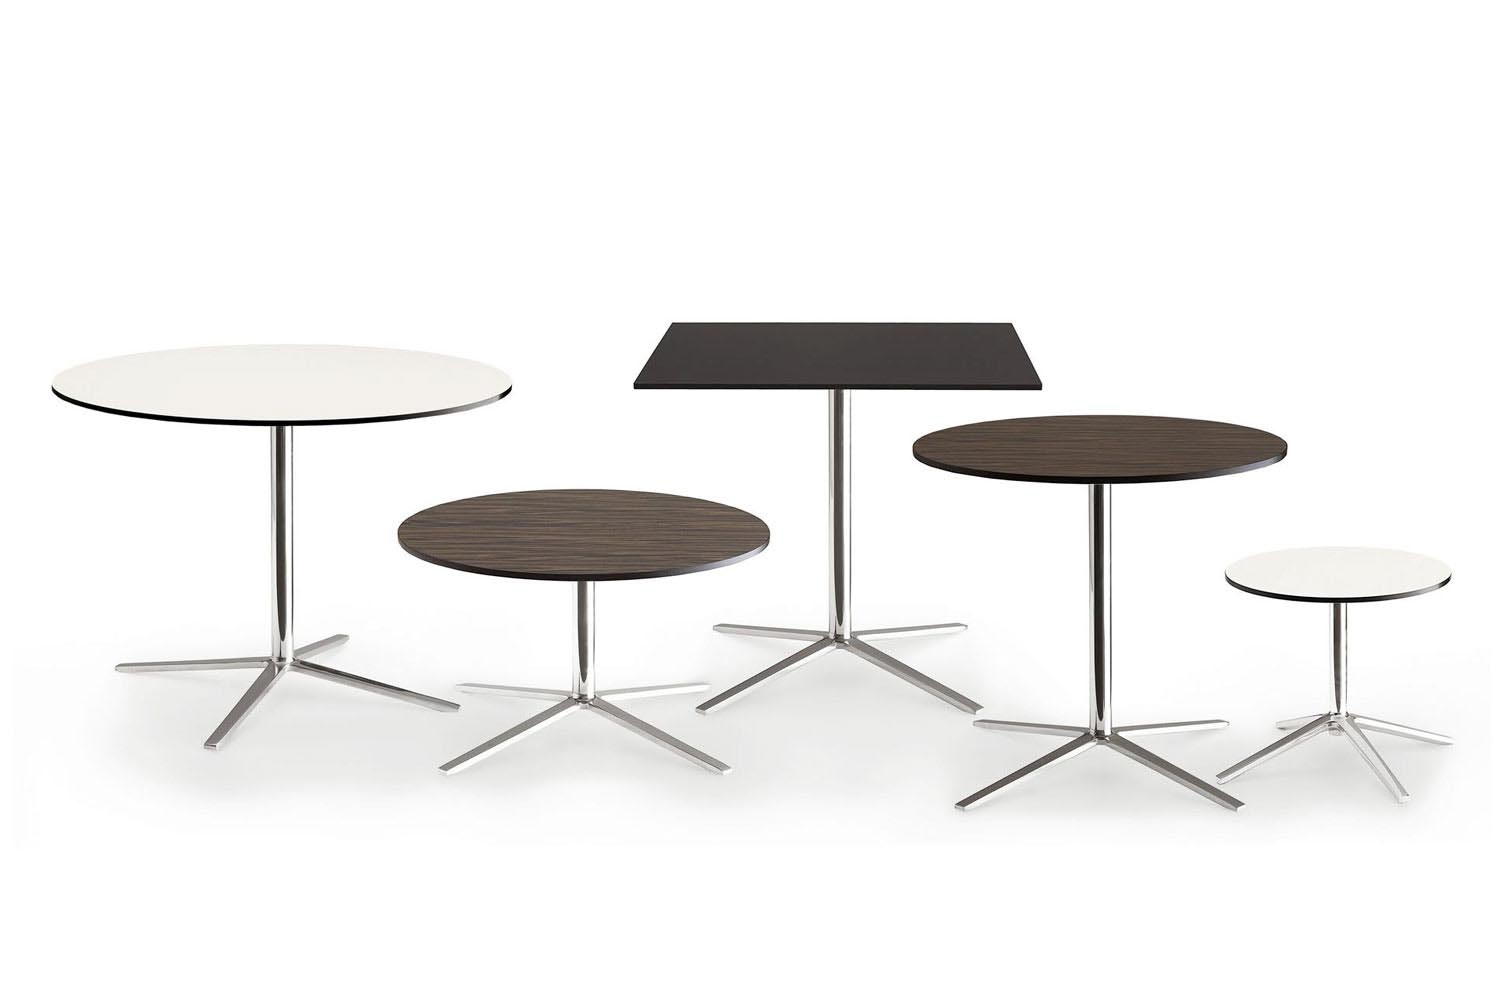 Cosmos Small Table by Jeffrey Bernett for B&B Italia Project